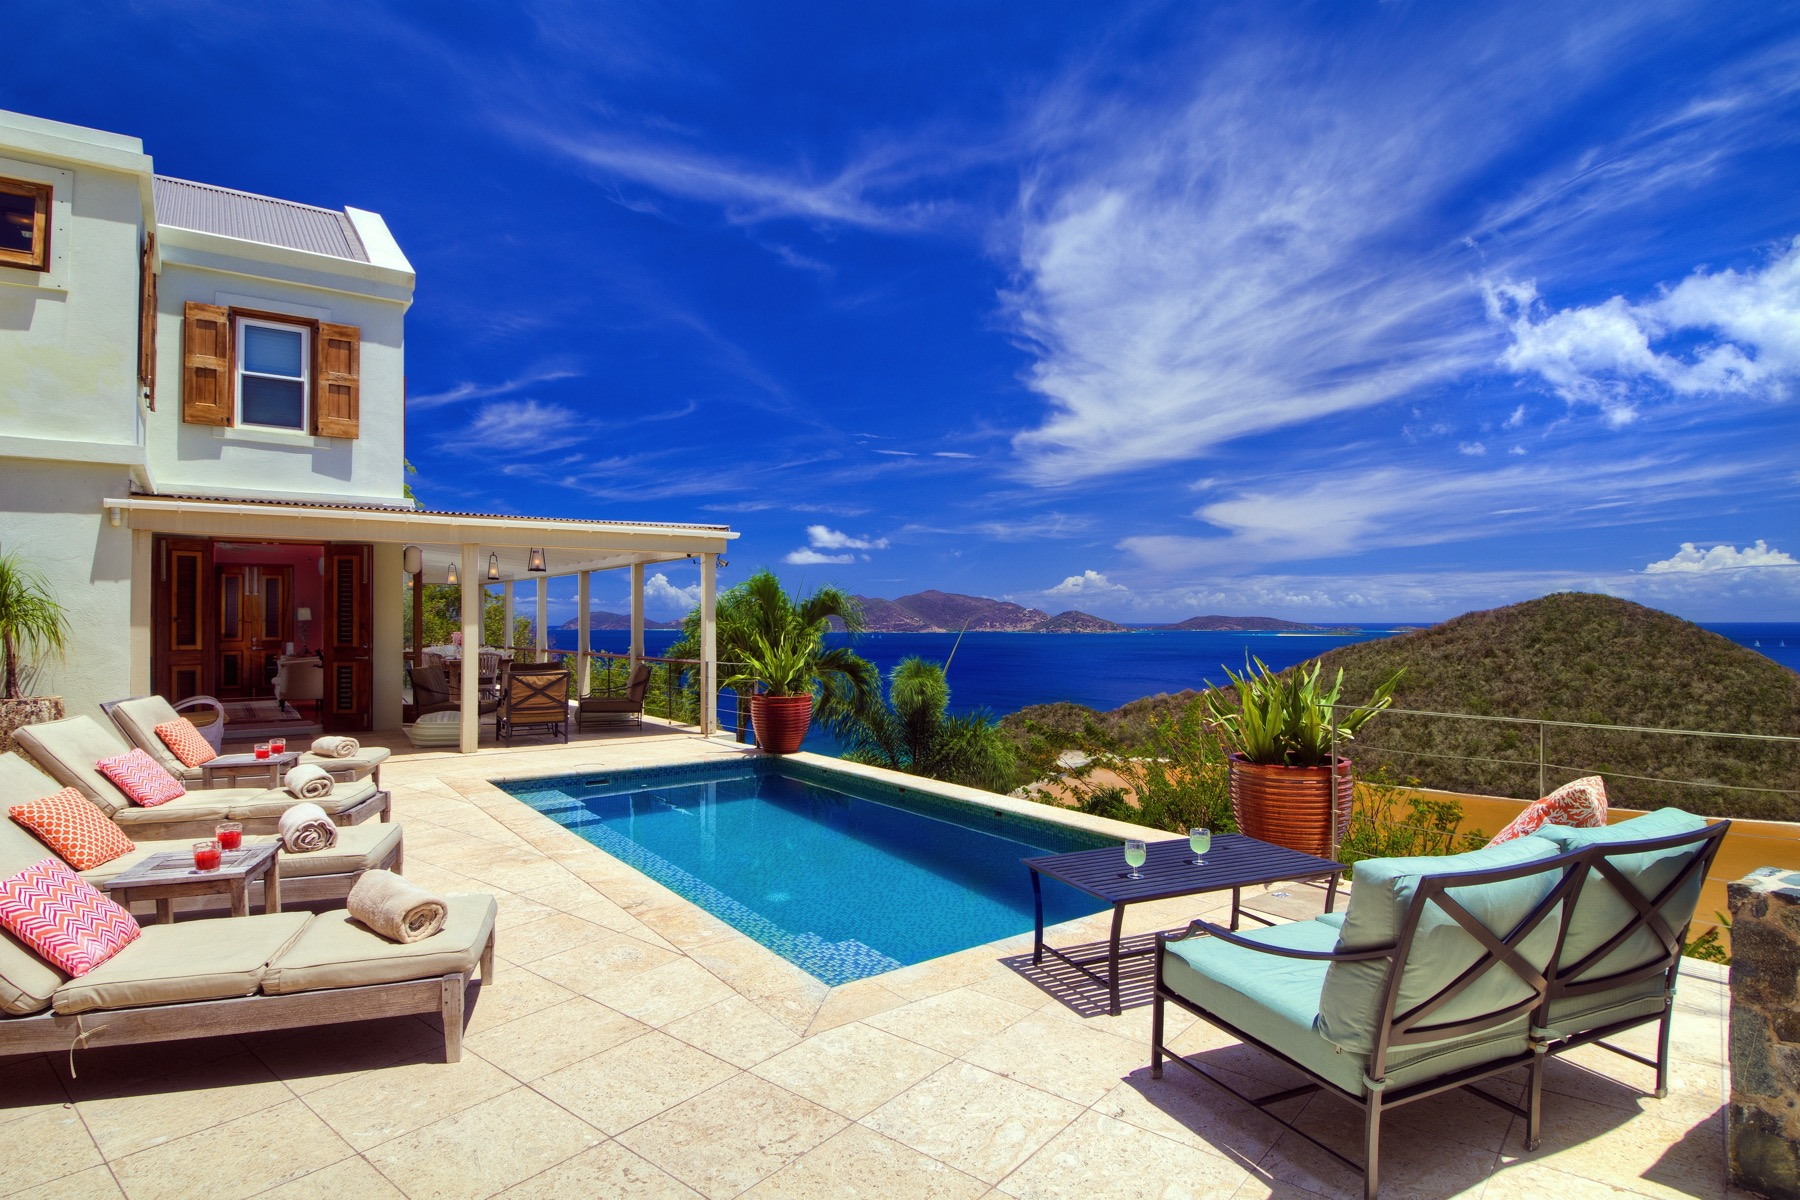 Single Family Home for Sale at Cohoba House Belmont, Tortola British Virgin Islands